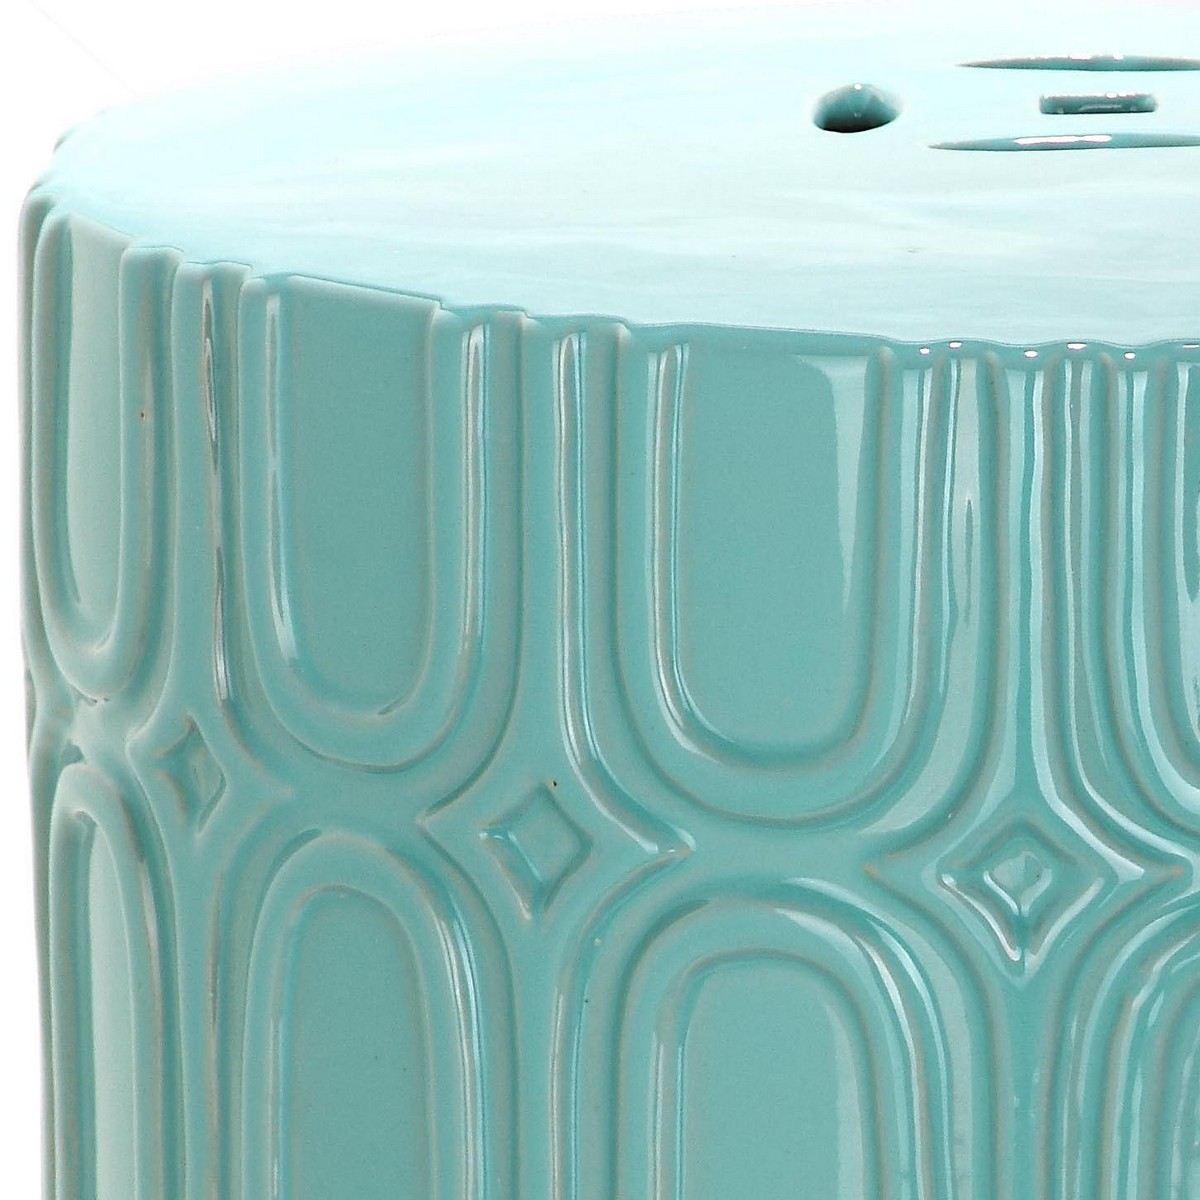 Pretty And Practical, The Light Blue Melody Garden Stool Adds Transitional  Elan To Any Room Indoors Or Out. Crafted Of Glazed Ceramic With Repeating  Oblong ...